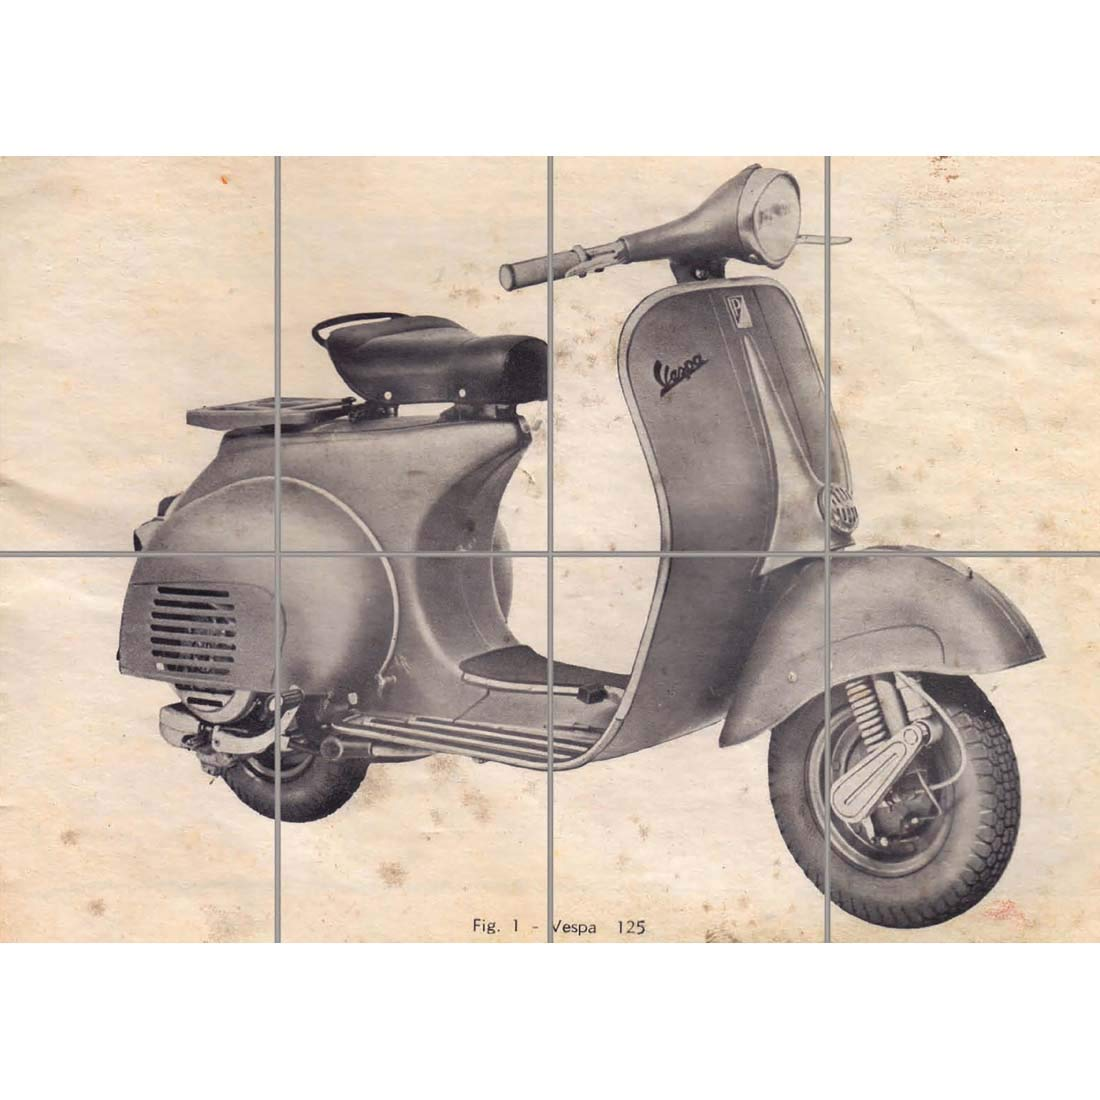 VINTAGE VESPA SCOOTER DRAWING GIANT WALL ART PRINT PICTURE ...